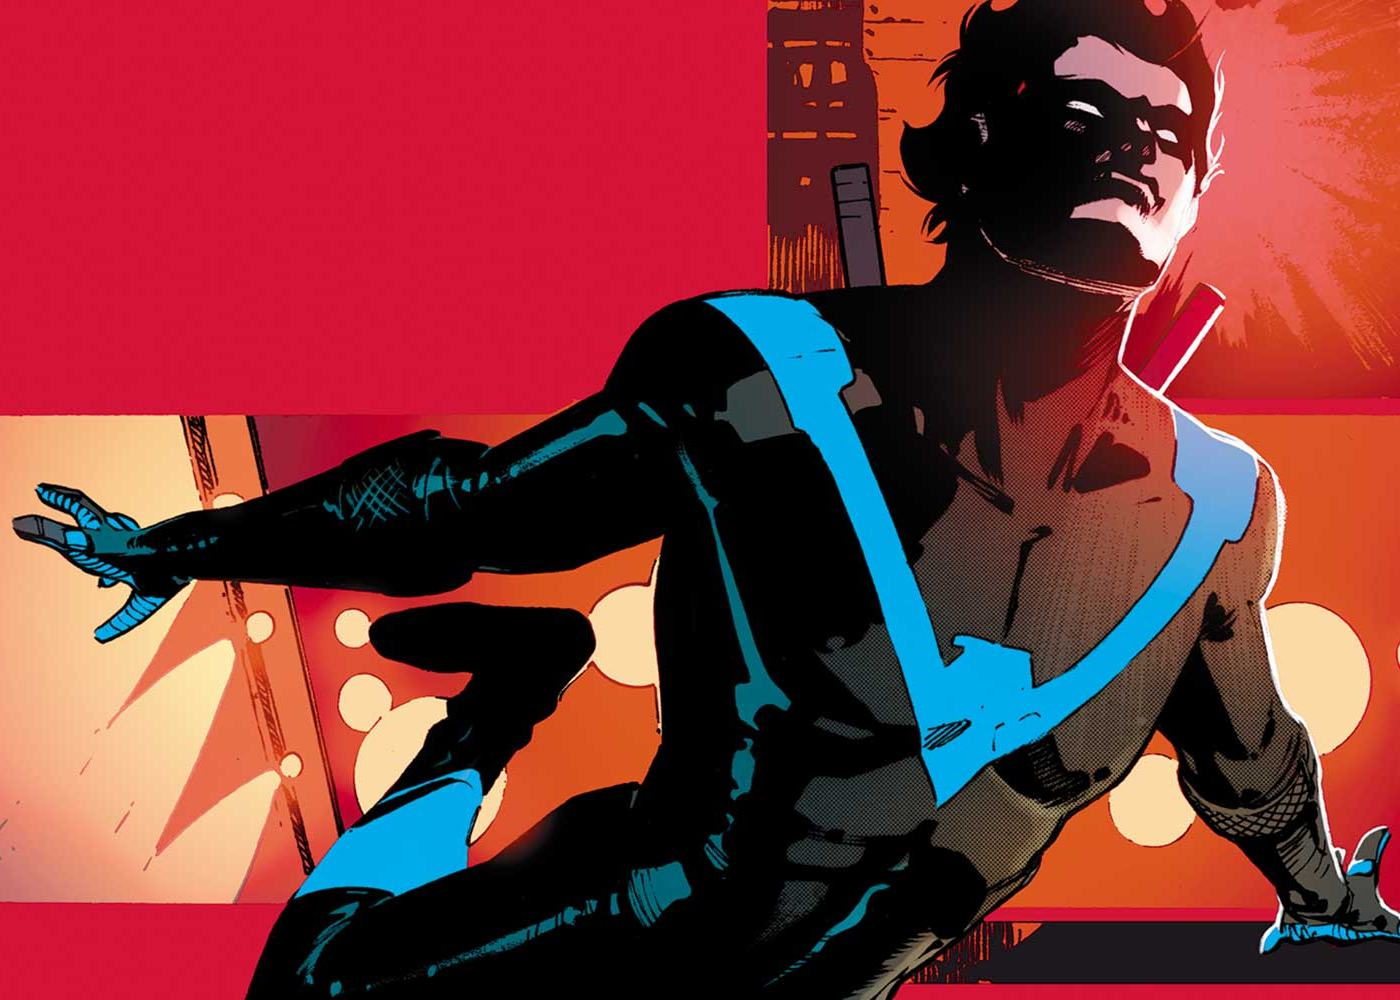 Nightwing Actor Will Need to Commit to Rigorous Training